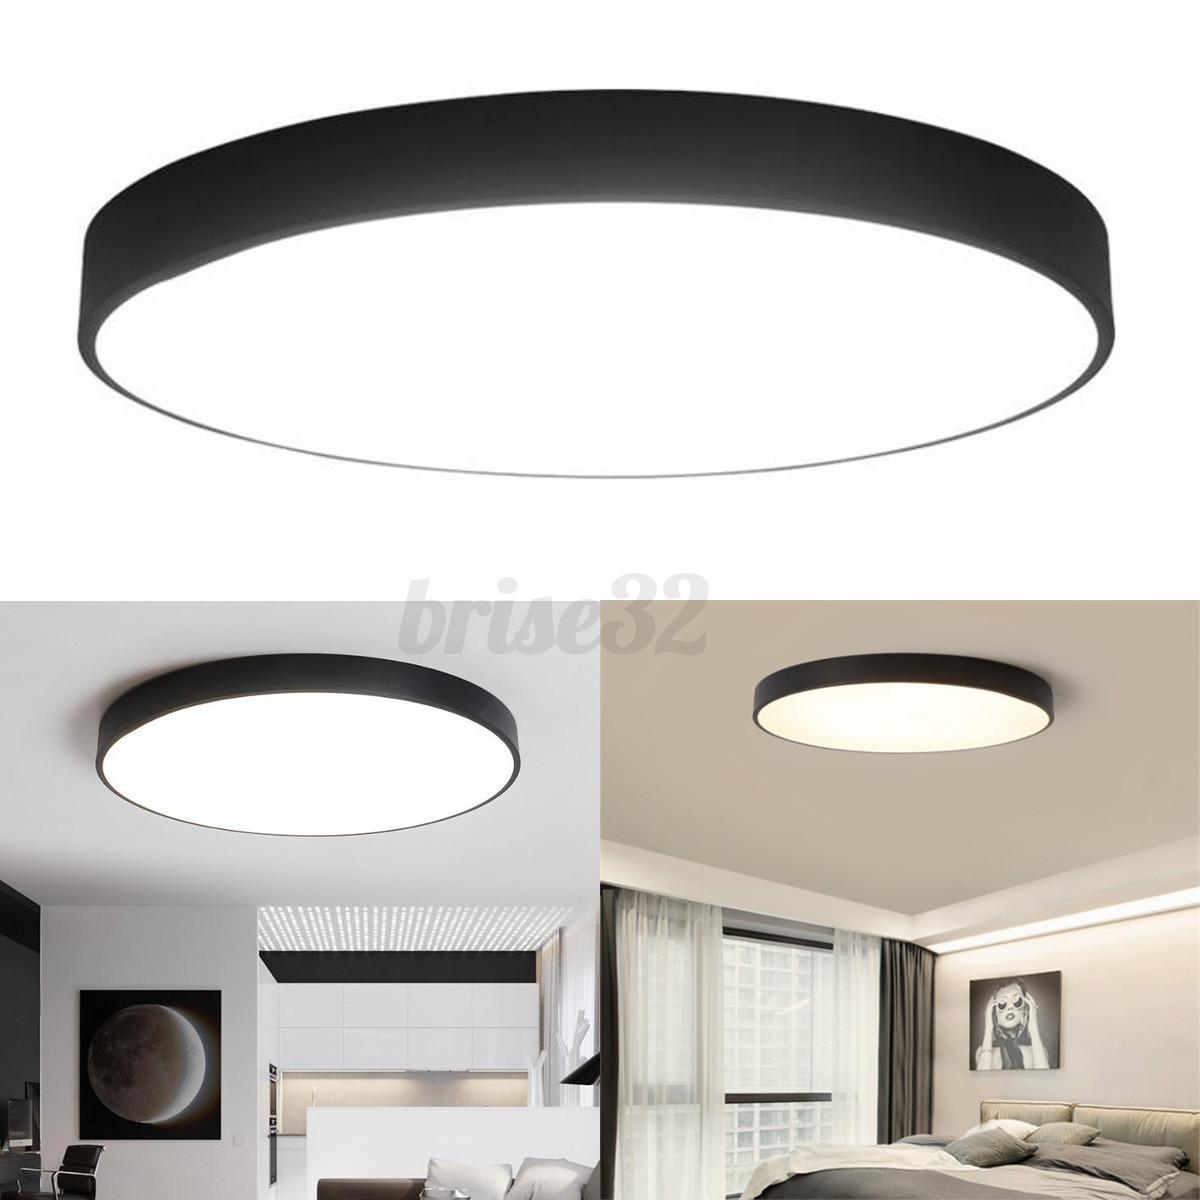 Round LED Ceiling Down Light Fixture Home Bedroom Living Room Surface Mount Lamp EBay